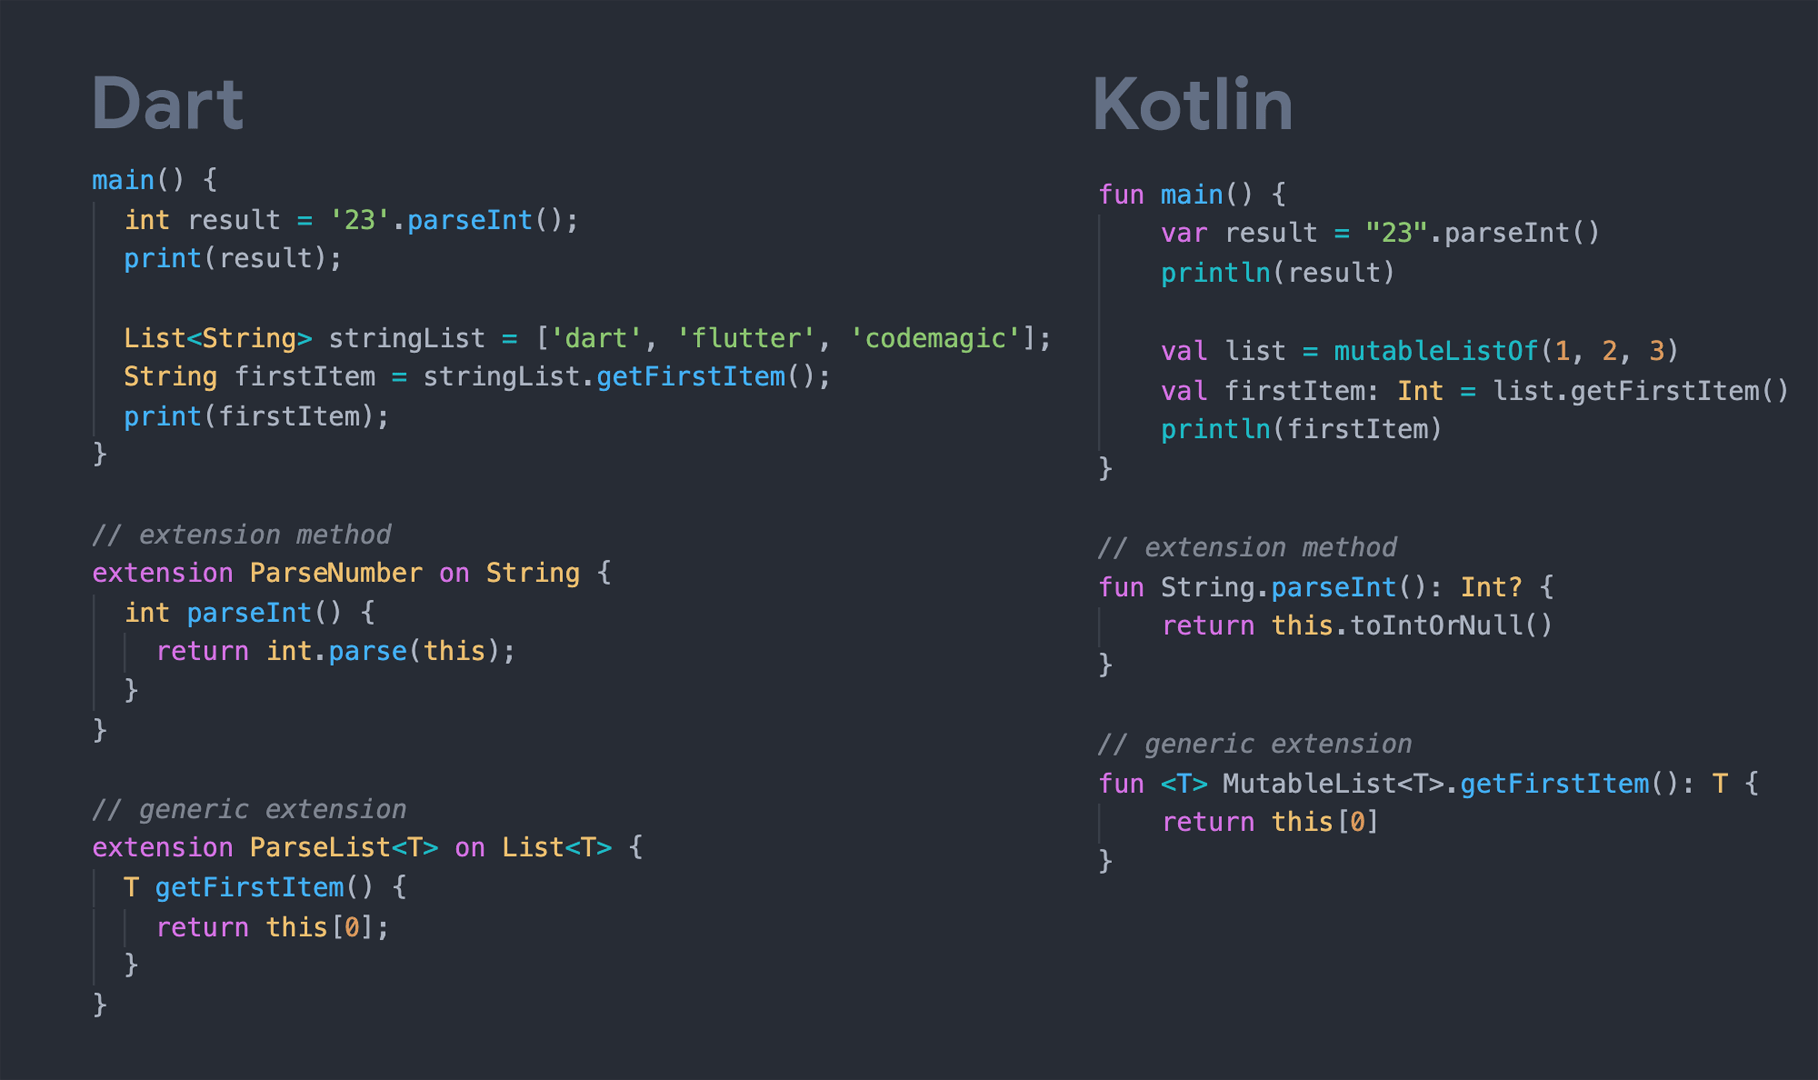 Dart vs Kotlin: Extensions